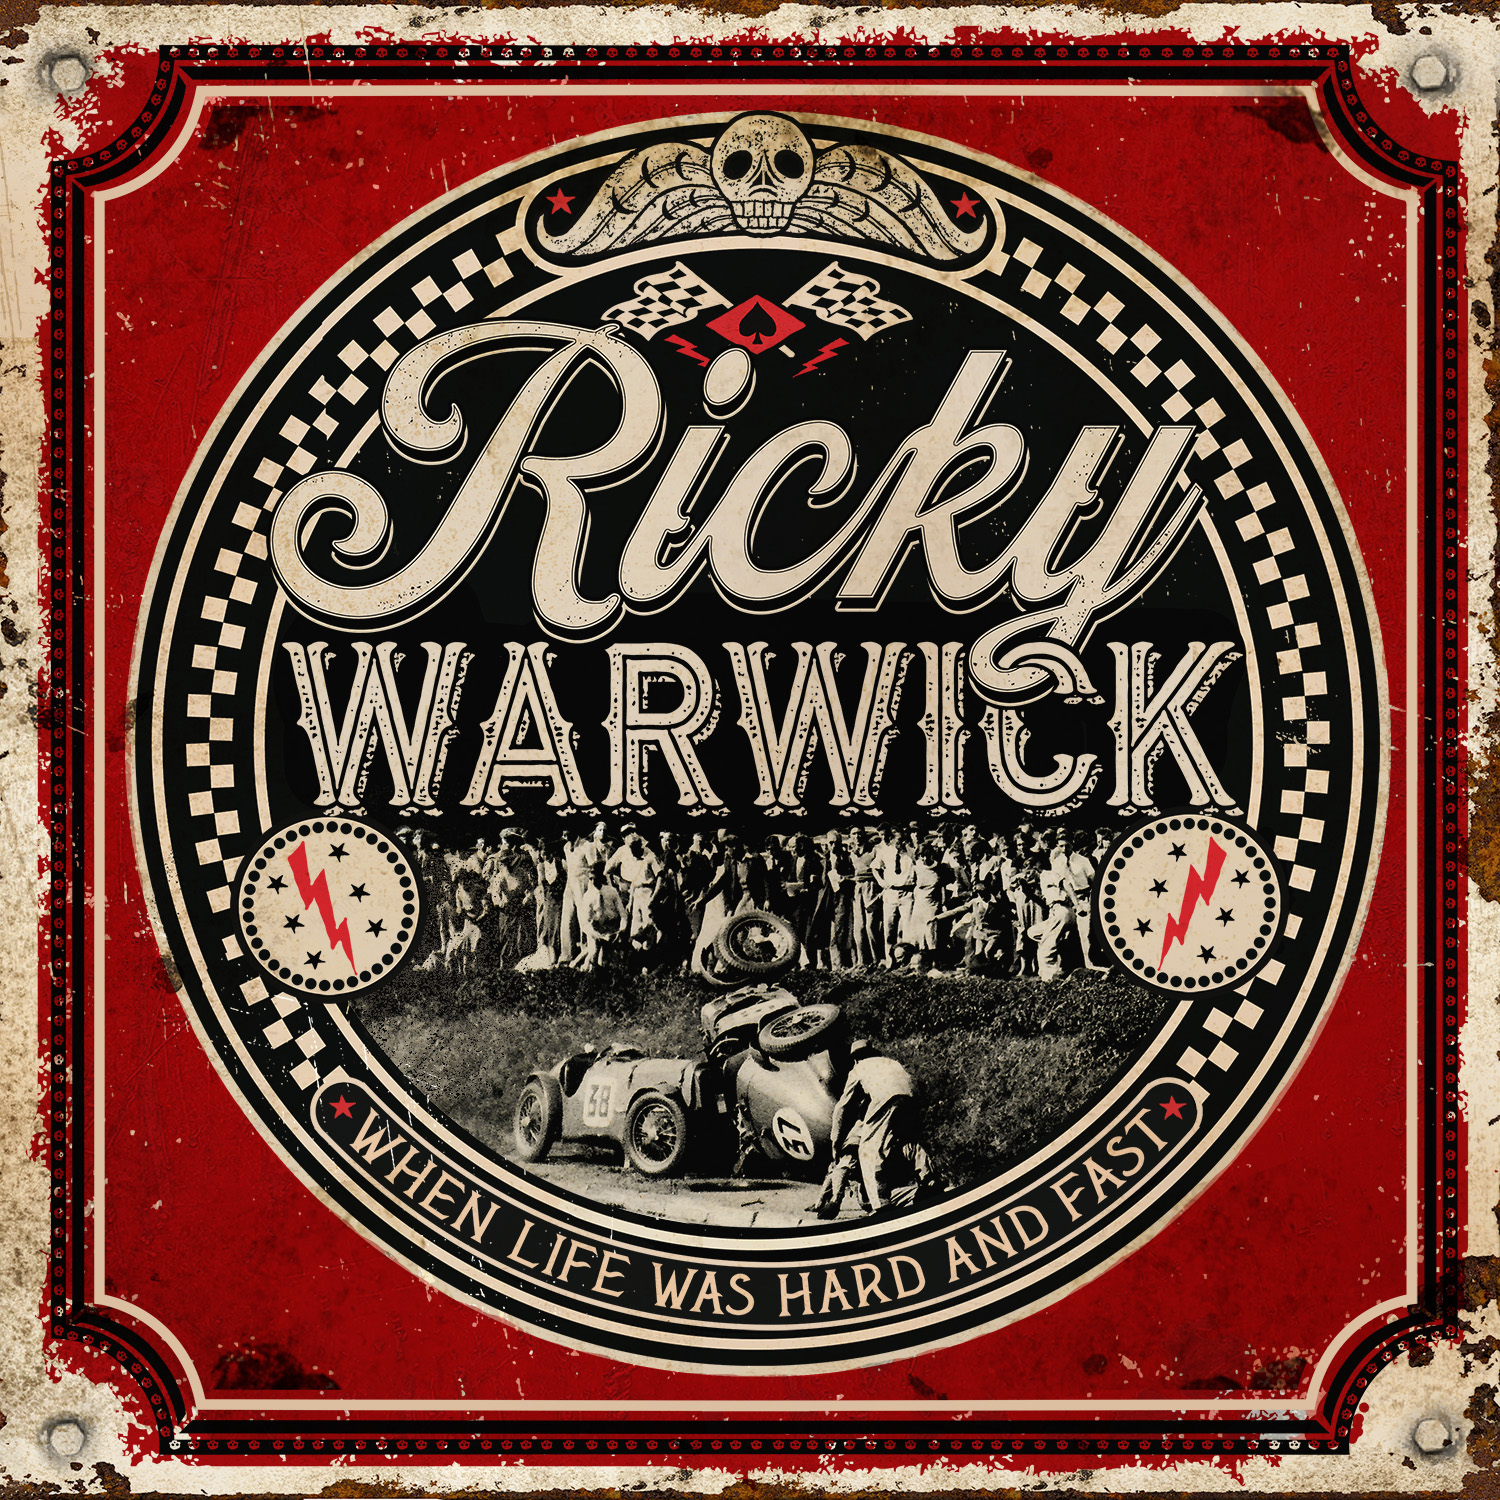 RICKY WARWICK Announces New Album 'When Life Was Hard And Fast' - Watch video for 'Fighting Heart'